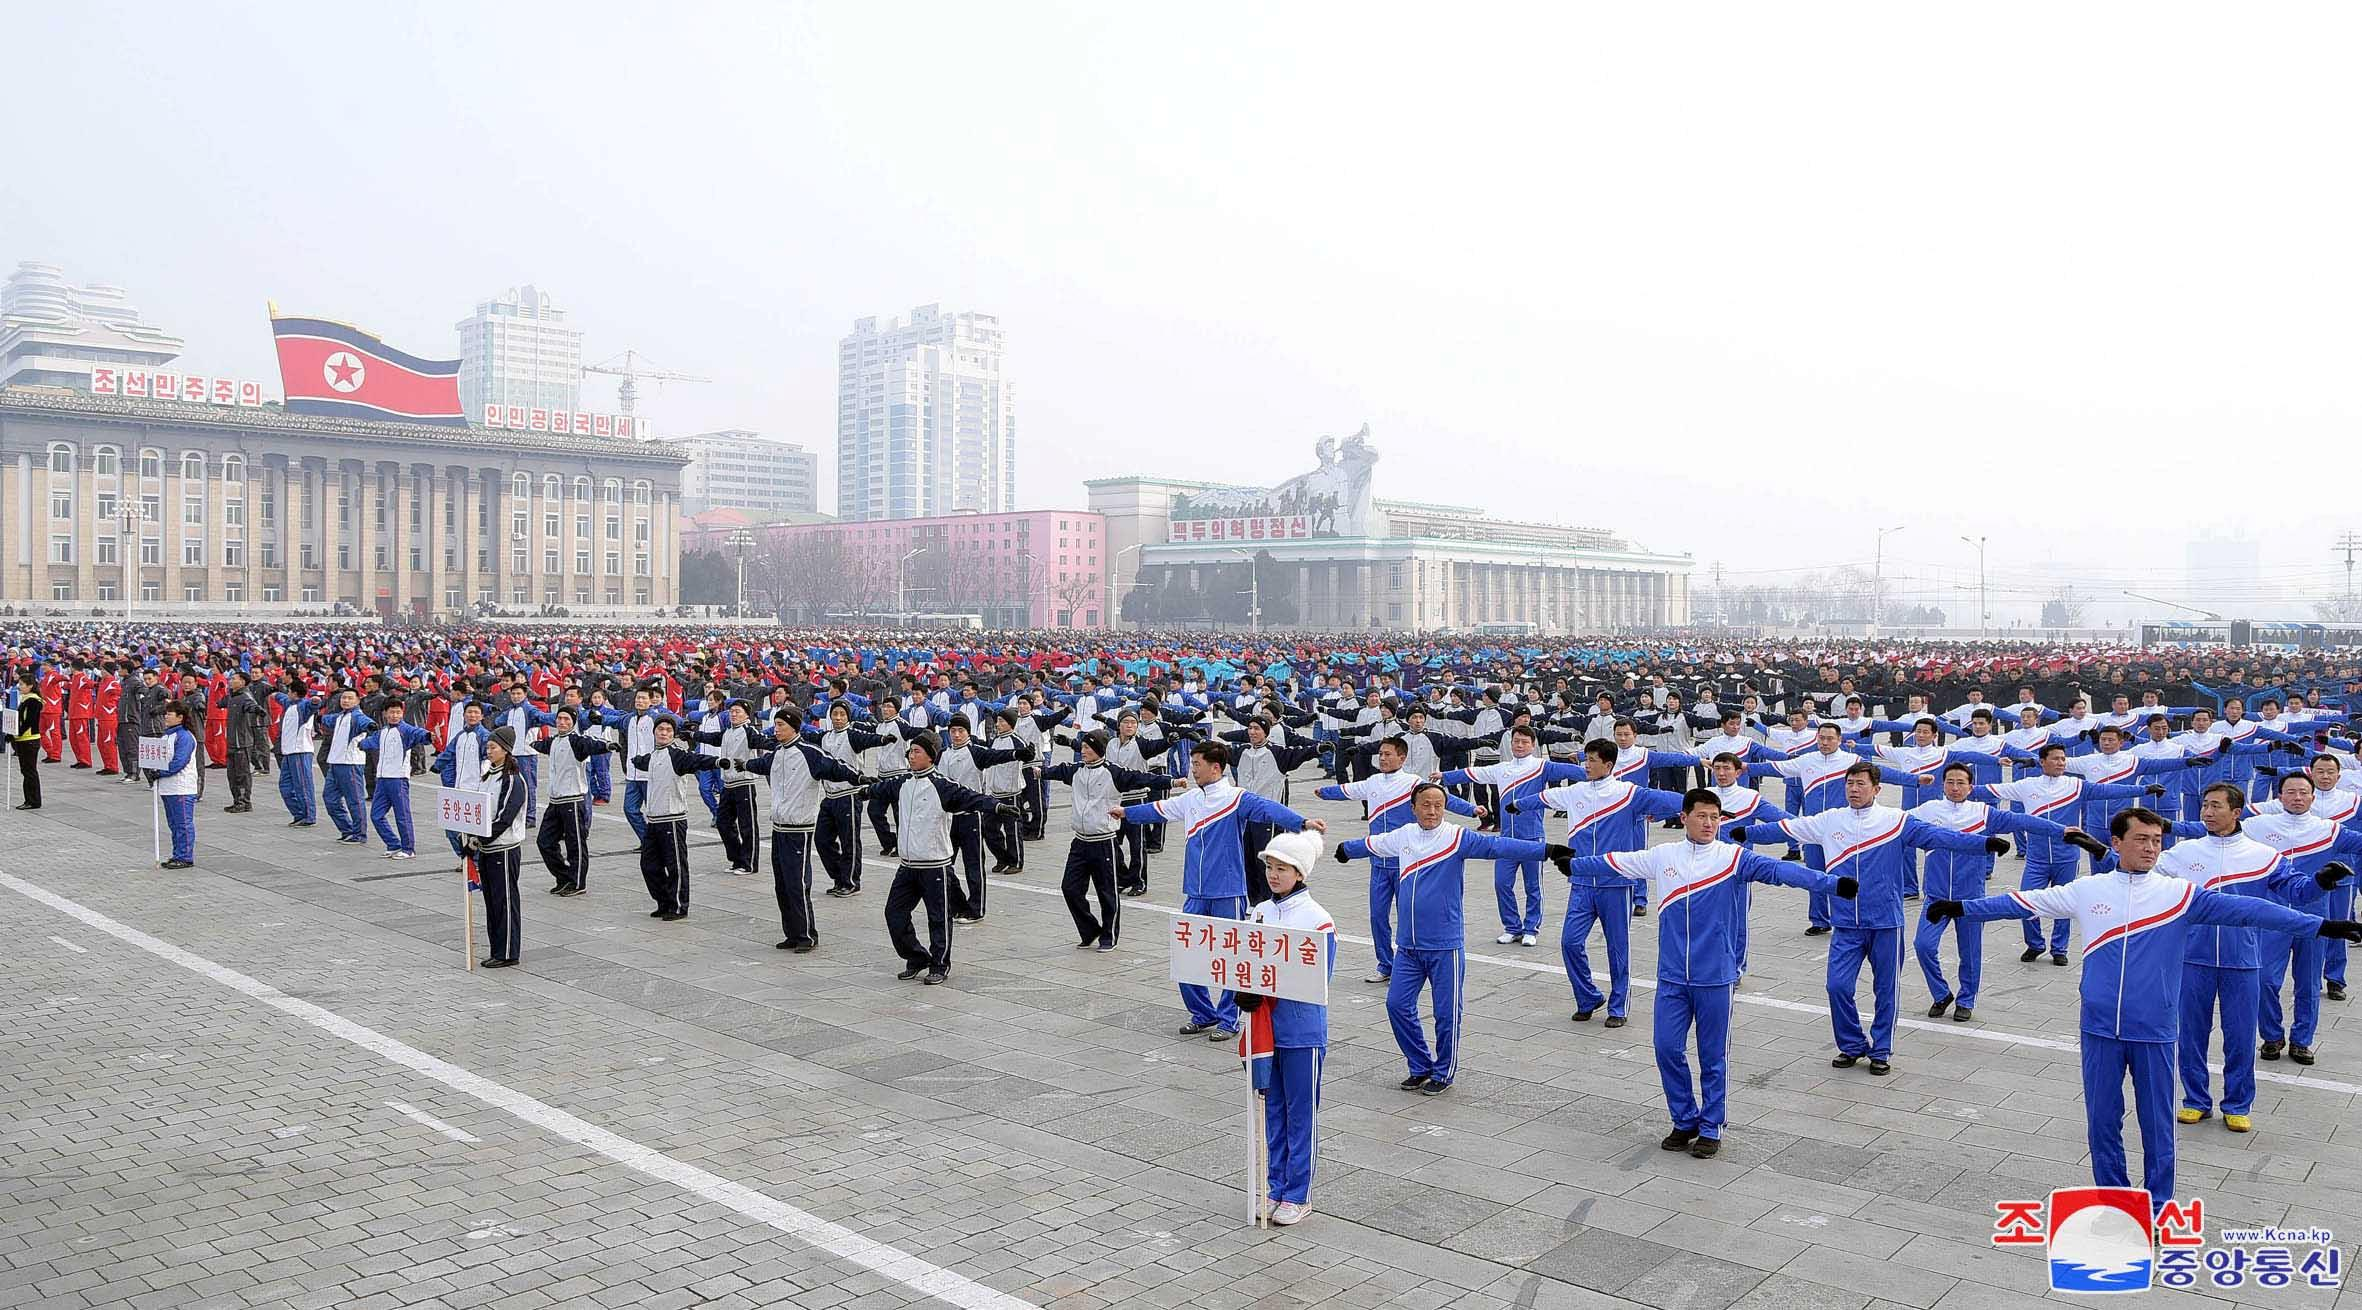 North Korean officials mark the state's sports day in Pyongyang, North Korea, in this photo released by North Korea's Korean Central News Agency (KCNA) on January 14, 2019. KCNA via REUTERS    ATTENTION EDITORS - THIS IMAGE WAS PROVIDED BY A THIRD PARTY. REUTERS IS UNABLE TO INDEPENDENTLY VERIFY THIS IMAGE. NO THIRD PARTY SALES. SOUTH KOREA OUT. NO COMMERCIAL OR EDITORIAL SALES IN SOUTH KOREA.